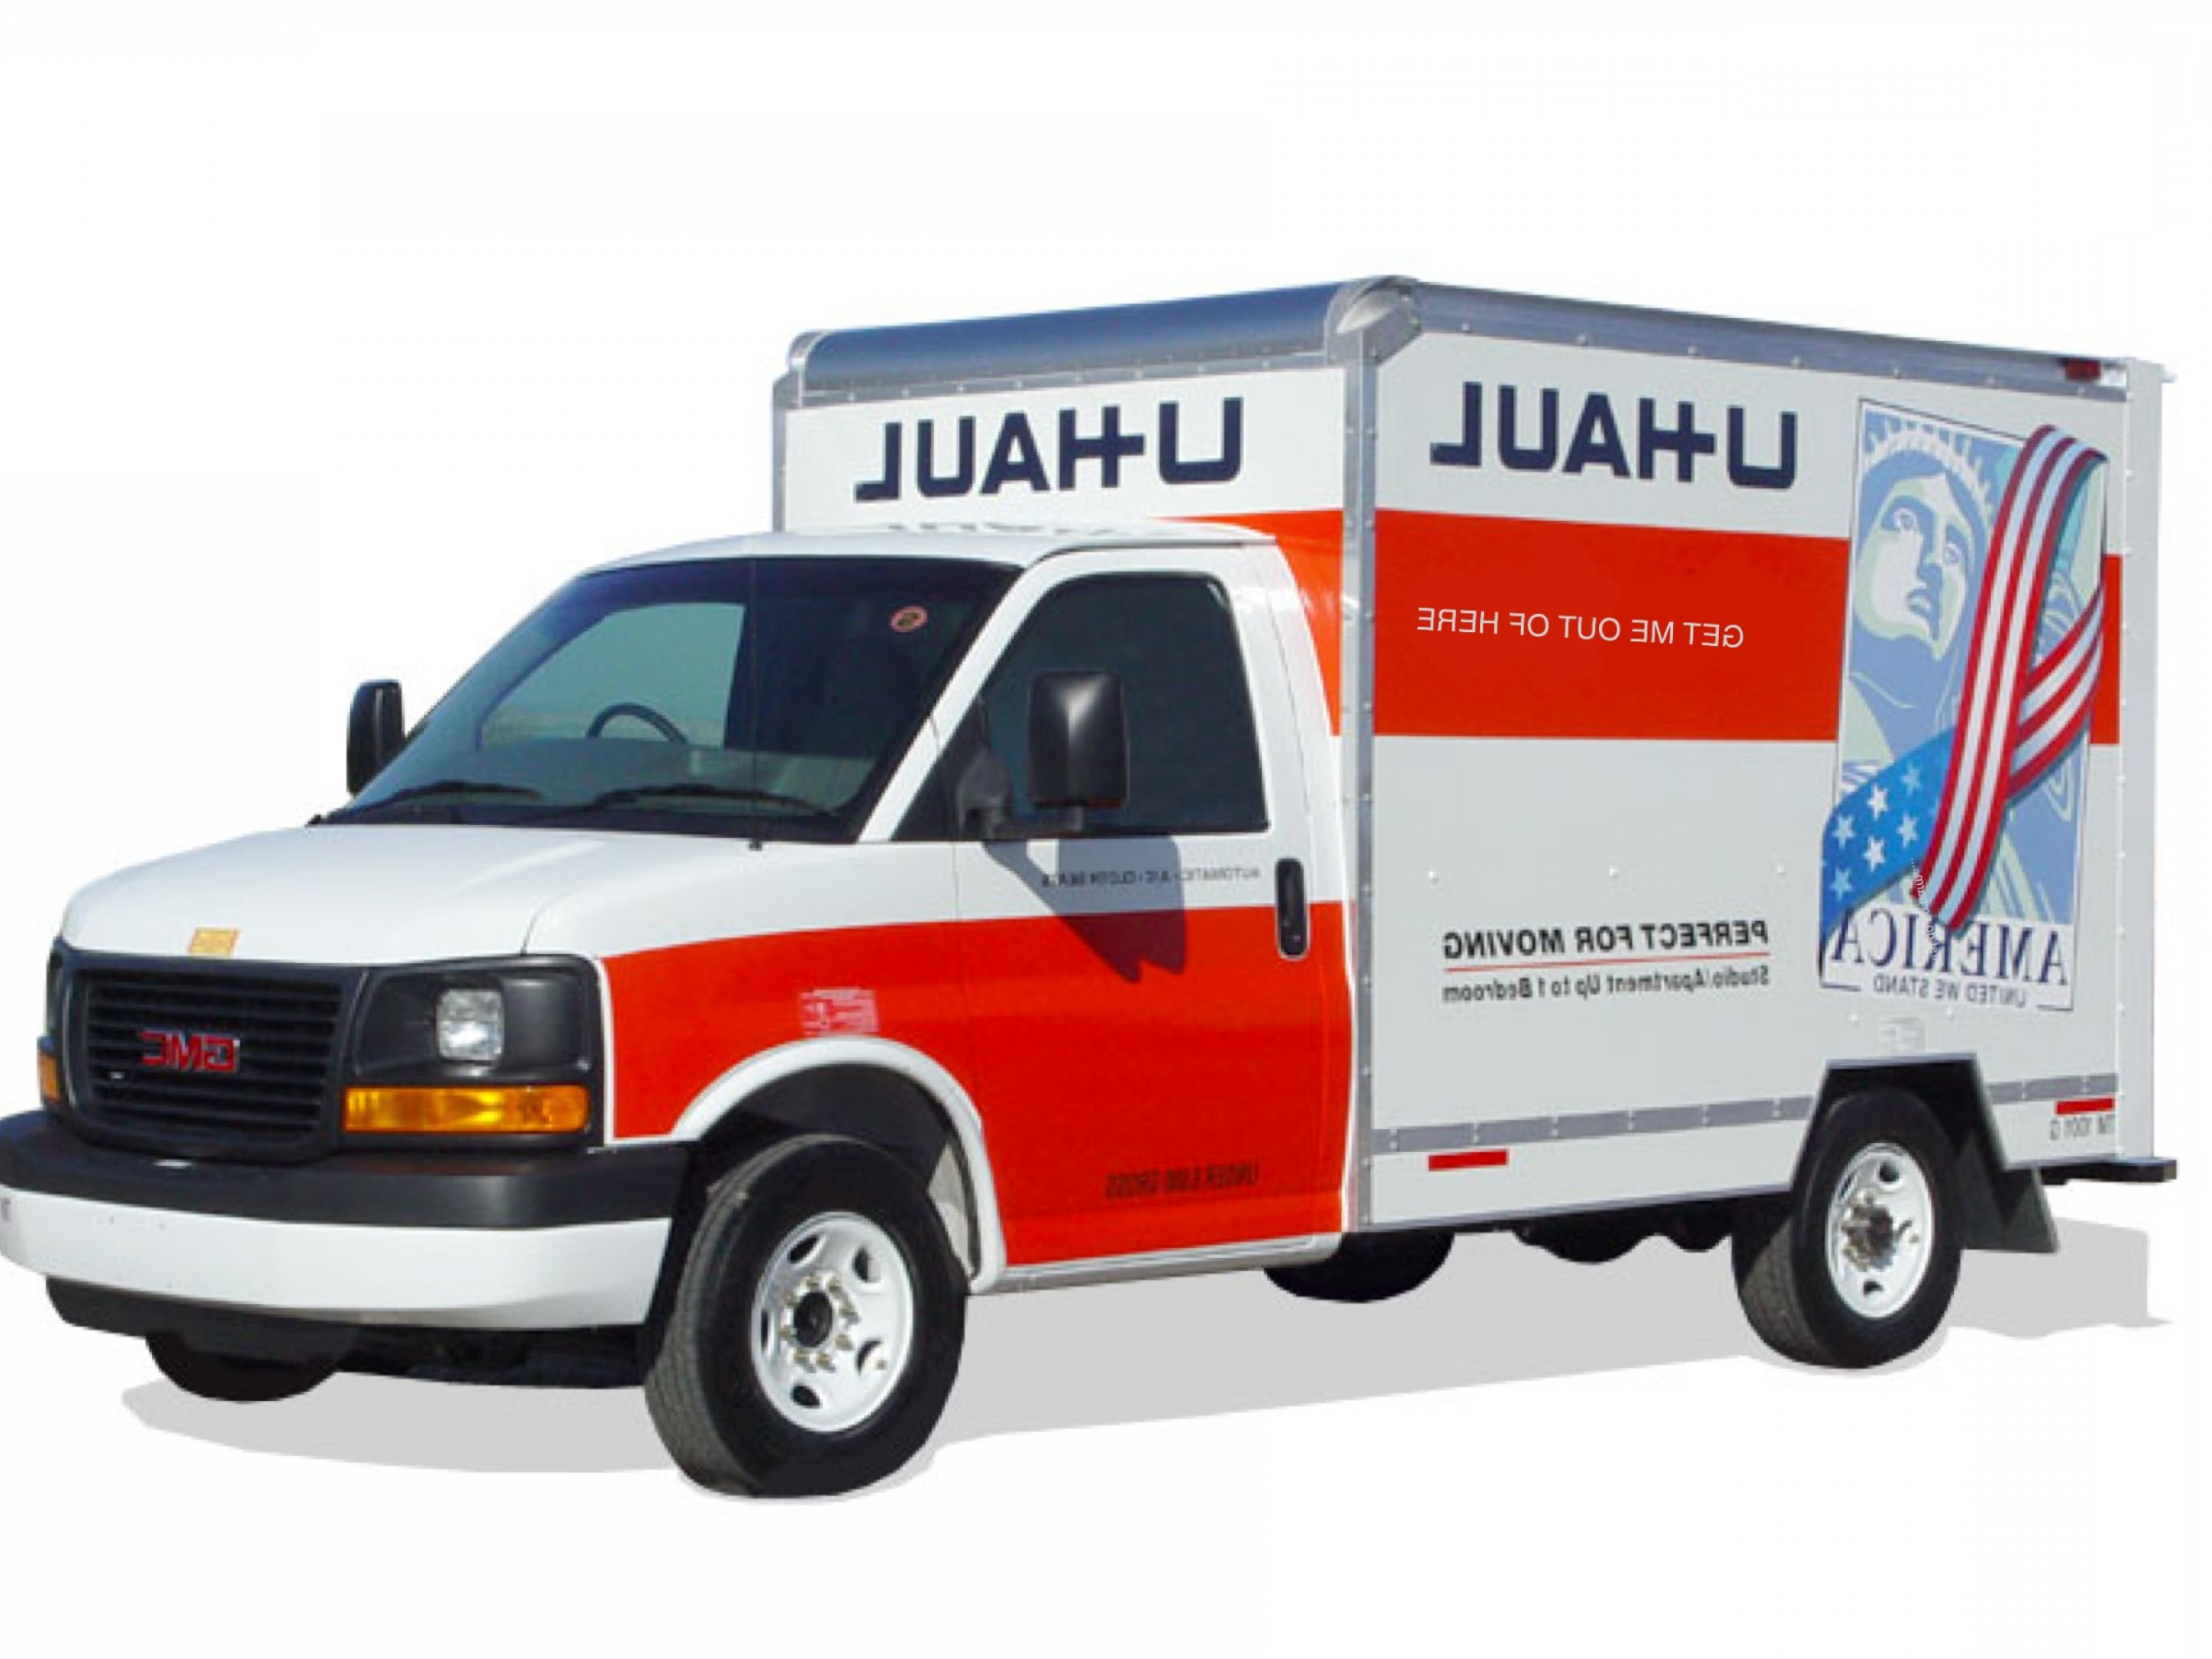 U-Haul Logo Vector Clip Art: Things You Learn When Move In With Your Girlfriend Autostraddle U Haul Clip Art